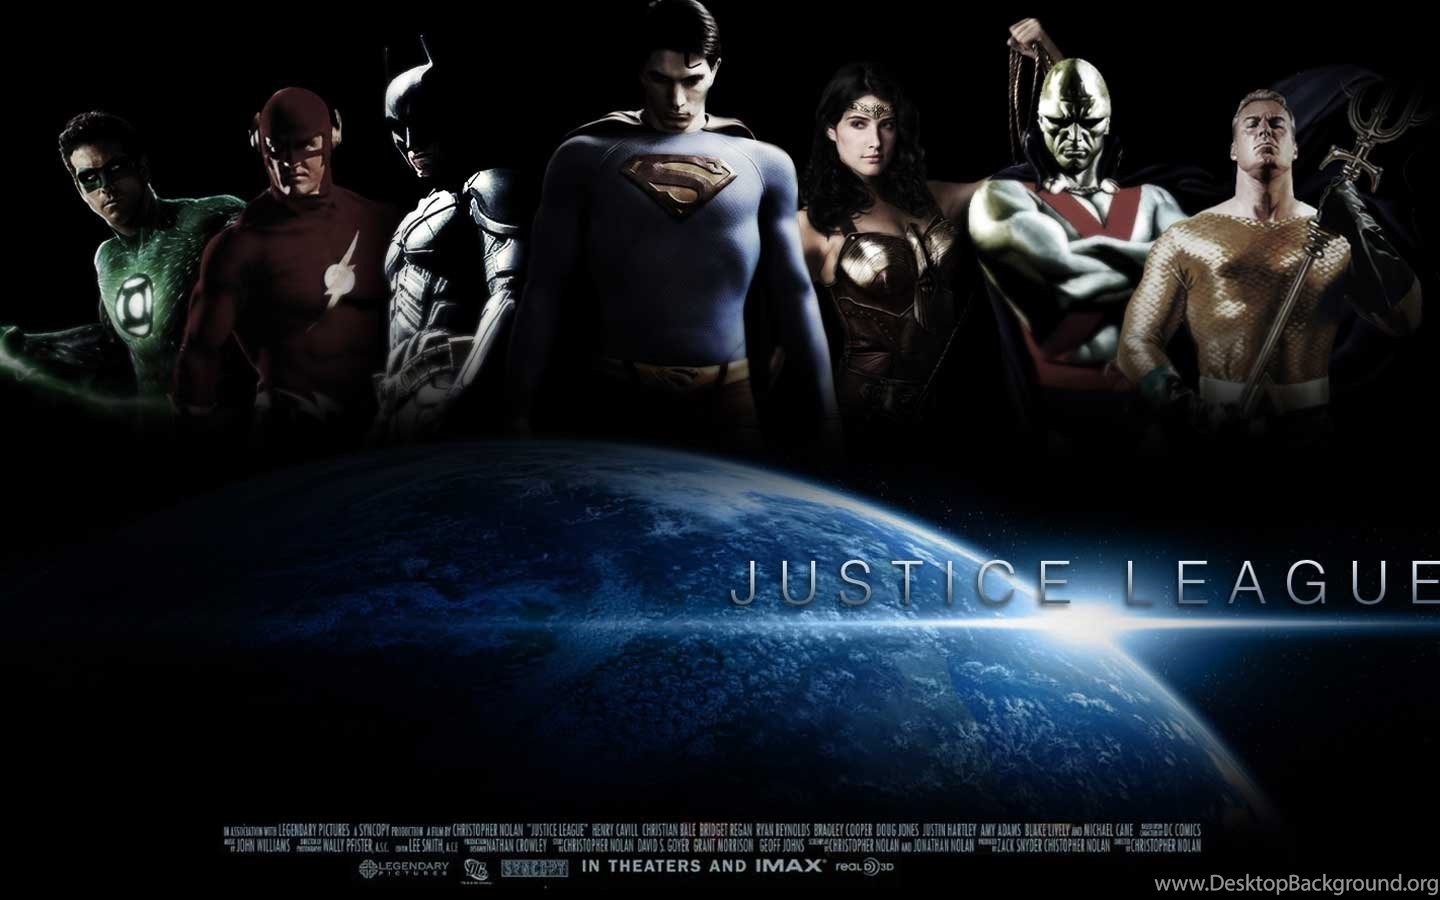 Cool Wallpaper Movie Justice League - 987427_free-download-justice-league-movie-wallpapers_1440x900_h  Photograph_725783.jpg